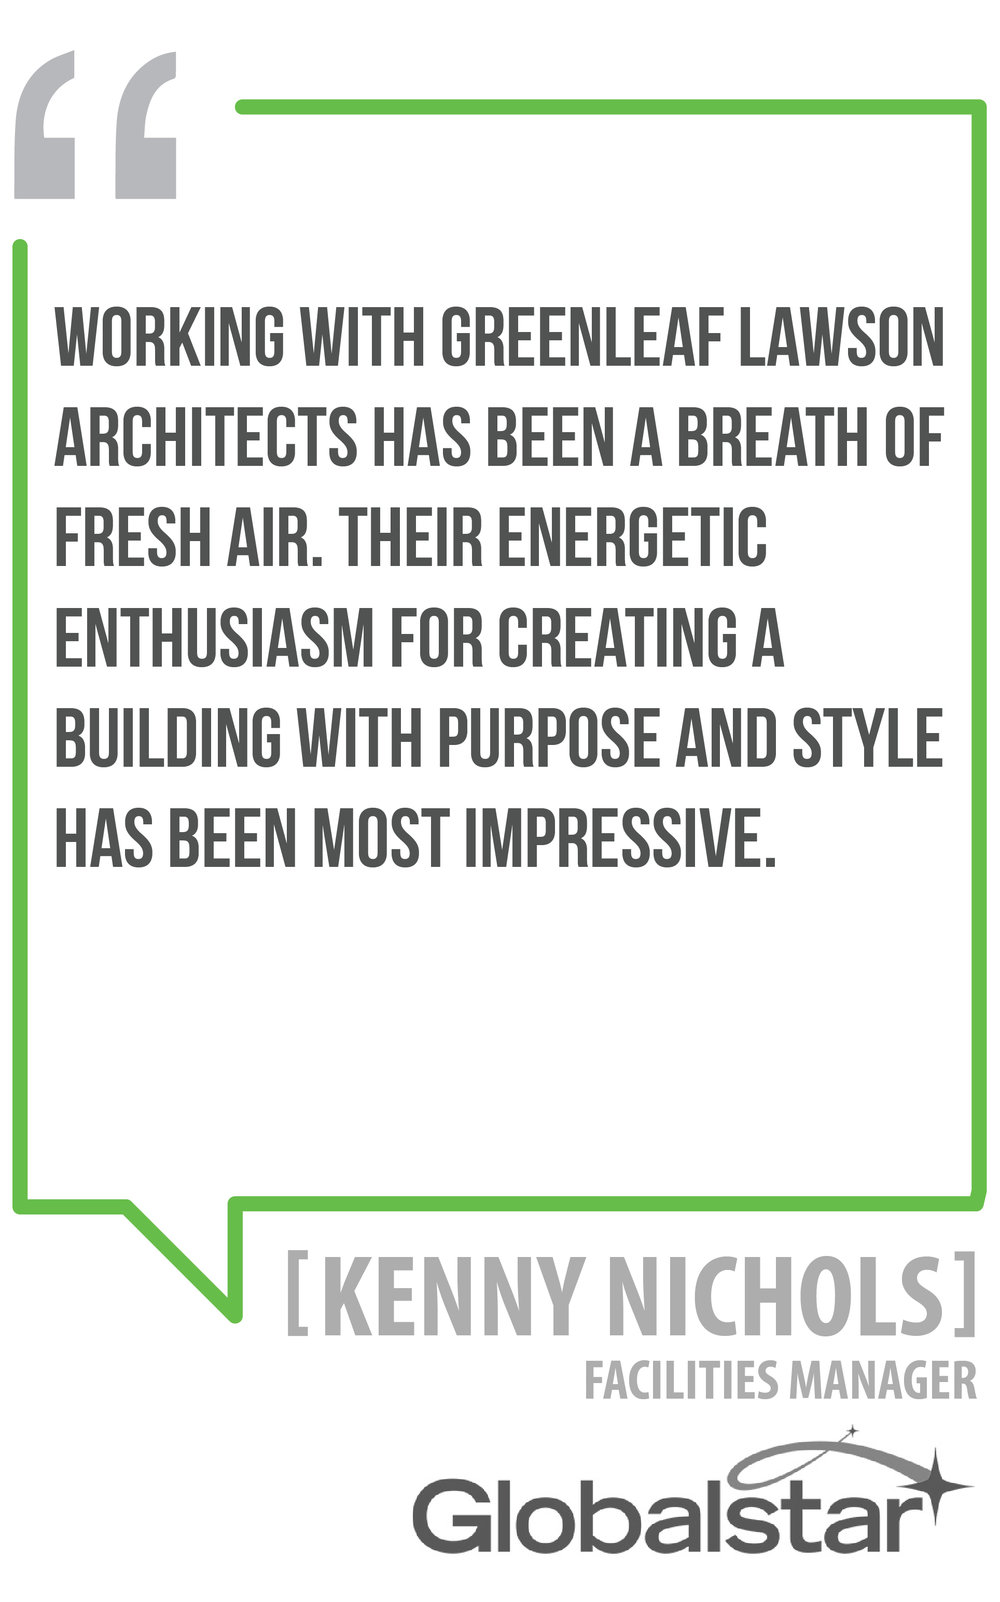 Greenleaf_Lawson_Architects-Testimonials-Square-01.jpg